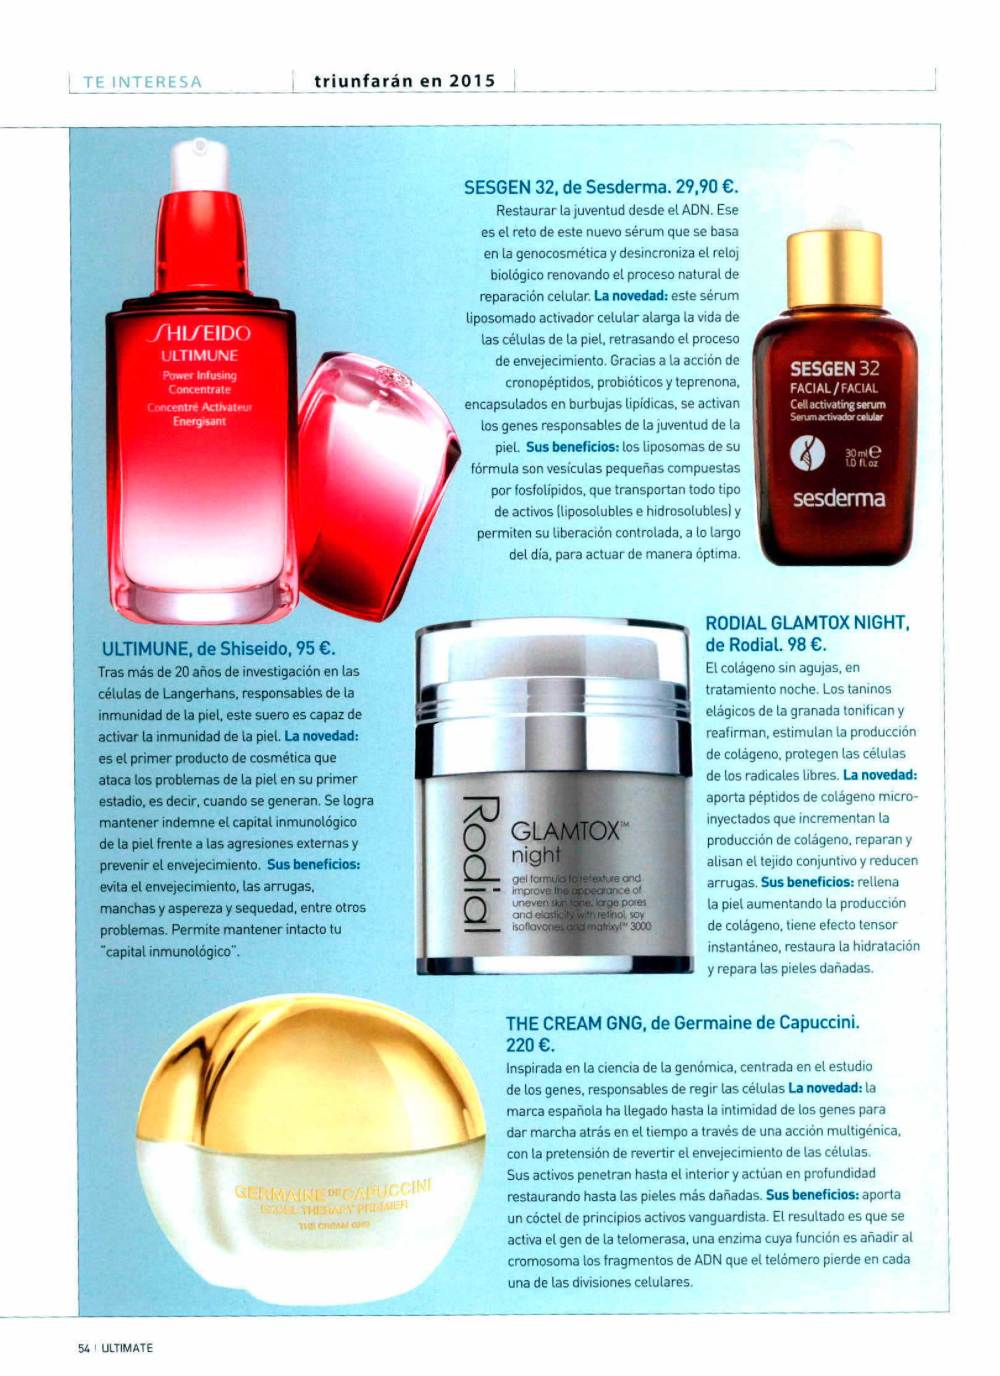 THE CREAM GNG ( ULTIMATE BEAUTY ) 01/12/2014